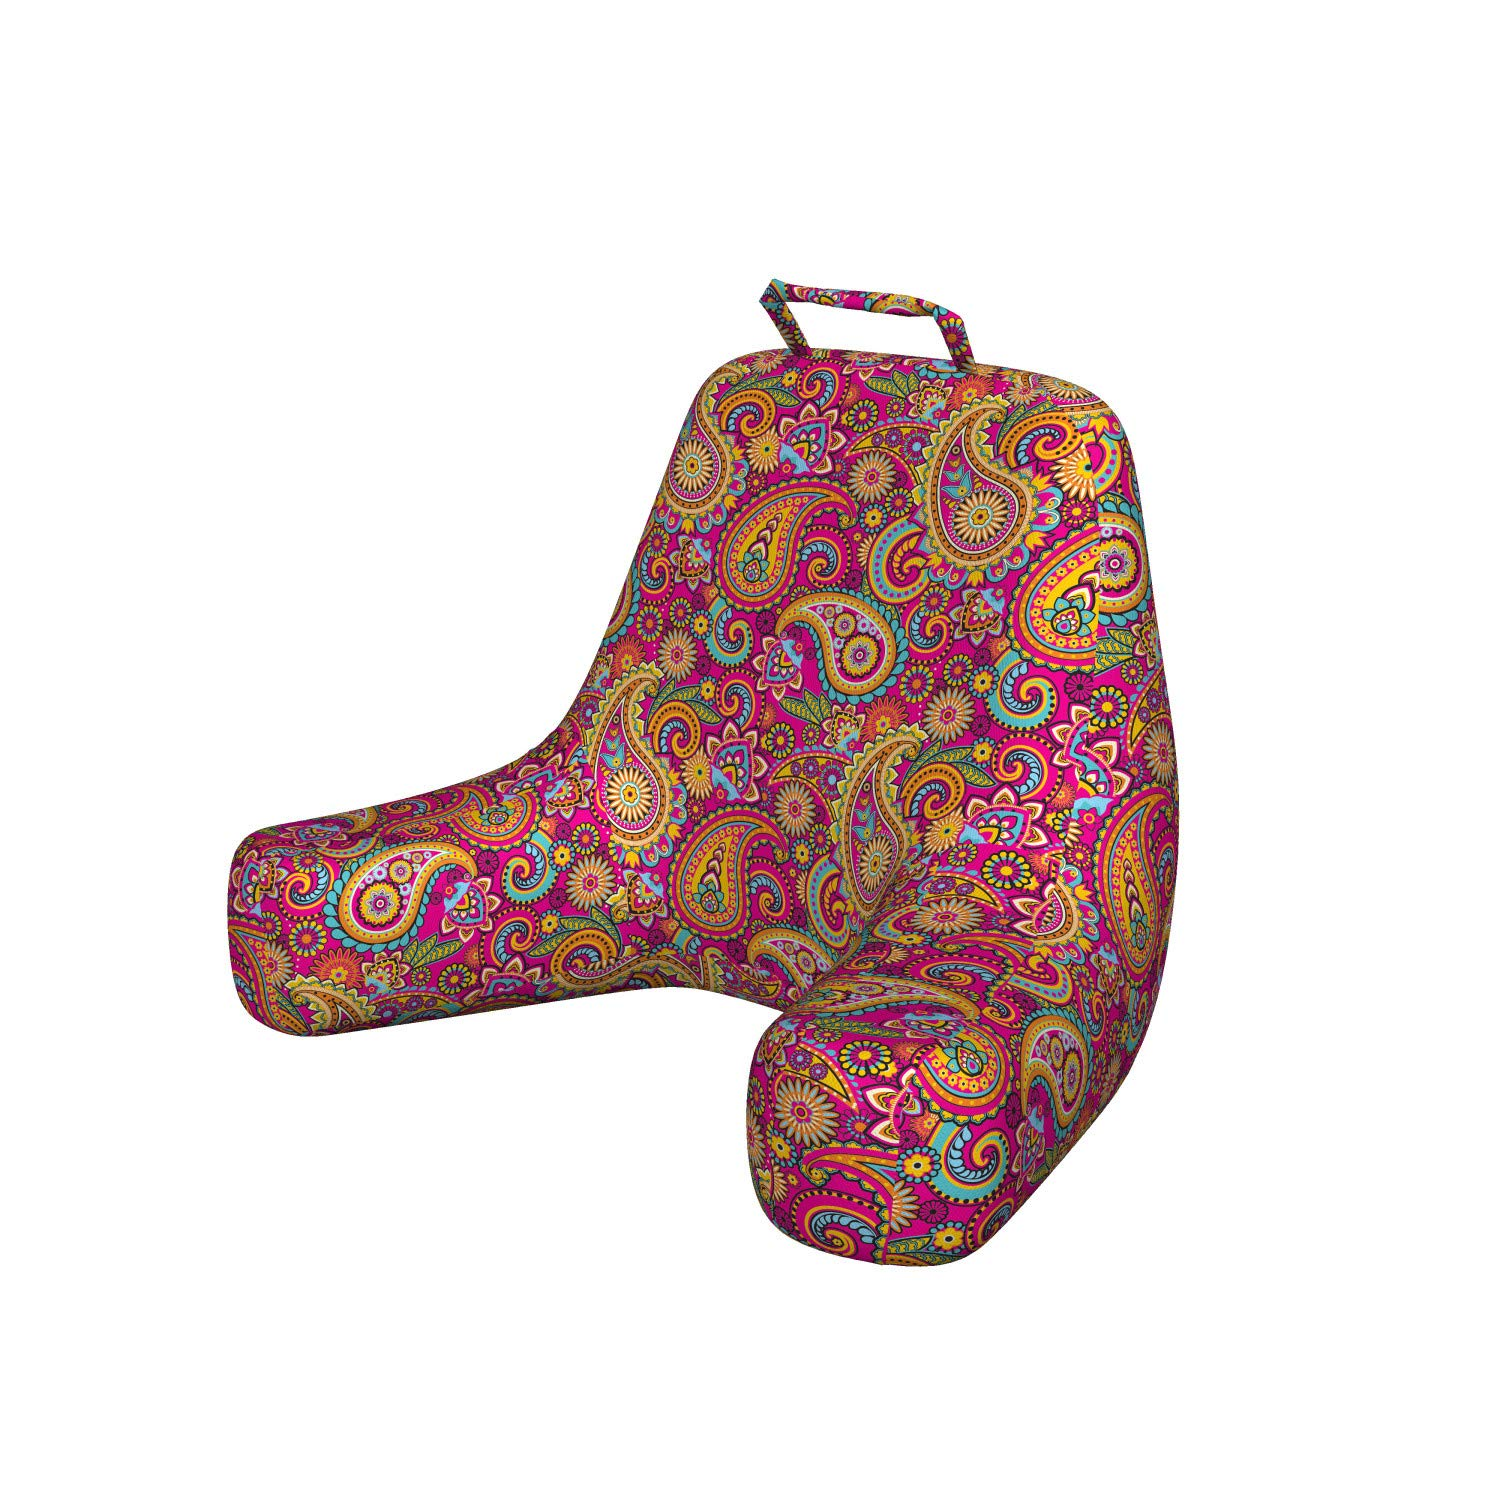 Ambesonne Paisley Reading Cushion with Back Pocket, Paisley Patterns Based on Traditional Eastern Pastel Design, Boyfriend Pillow for Bed Rest Gaming, X-Large, Pale Magenta